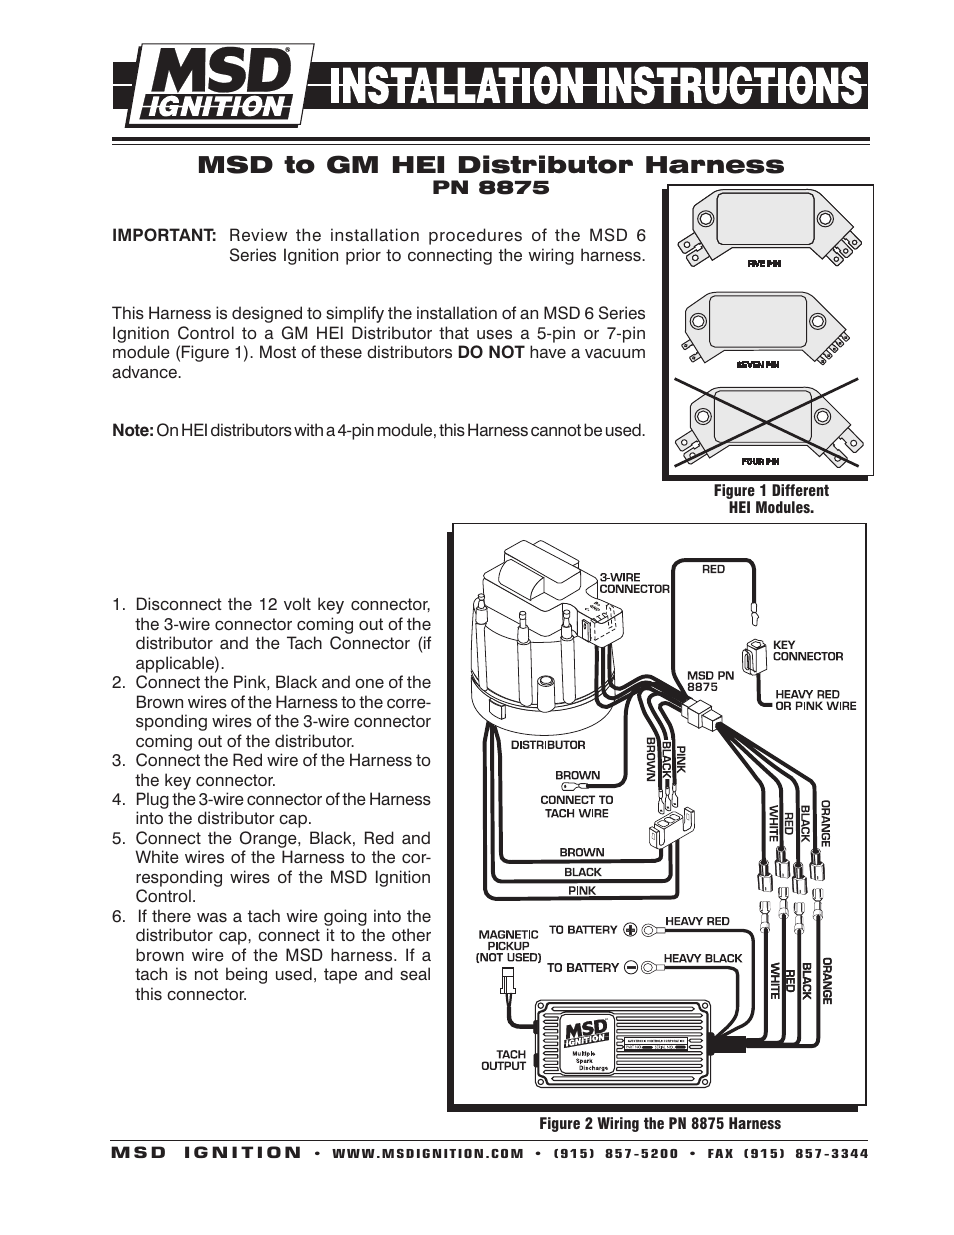 Gm Hei Tach Wiring Quick Start Guide Of Diagram Msd 8875 Harness Installation User Manual 2 Pages Rh Manualsdir Com Distributor